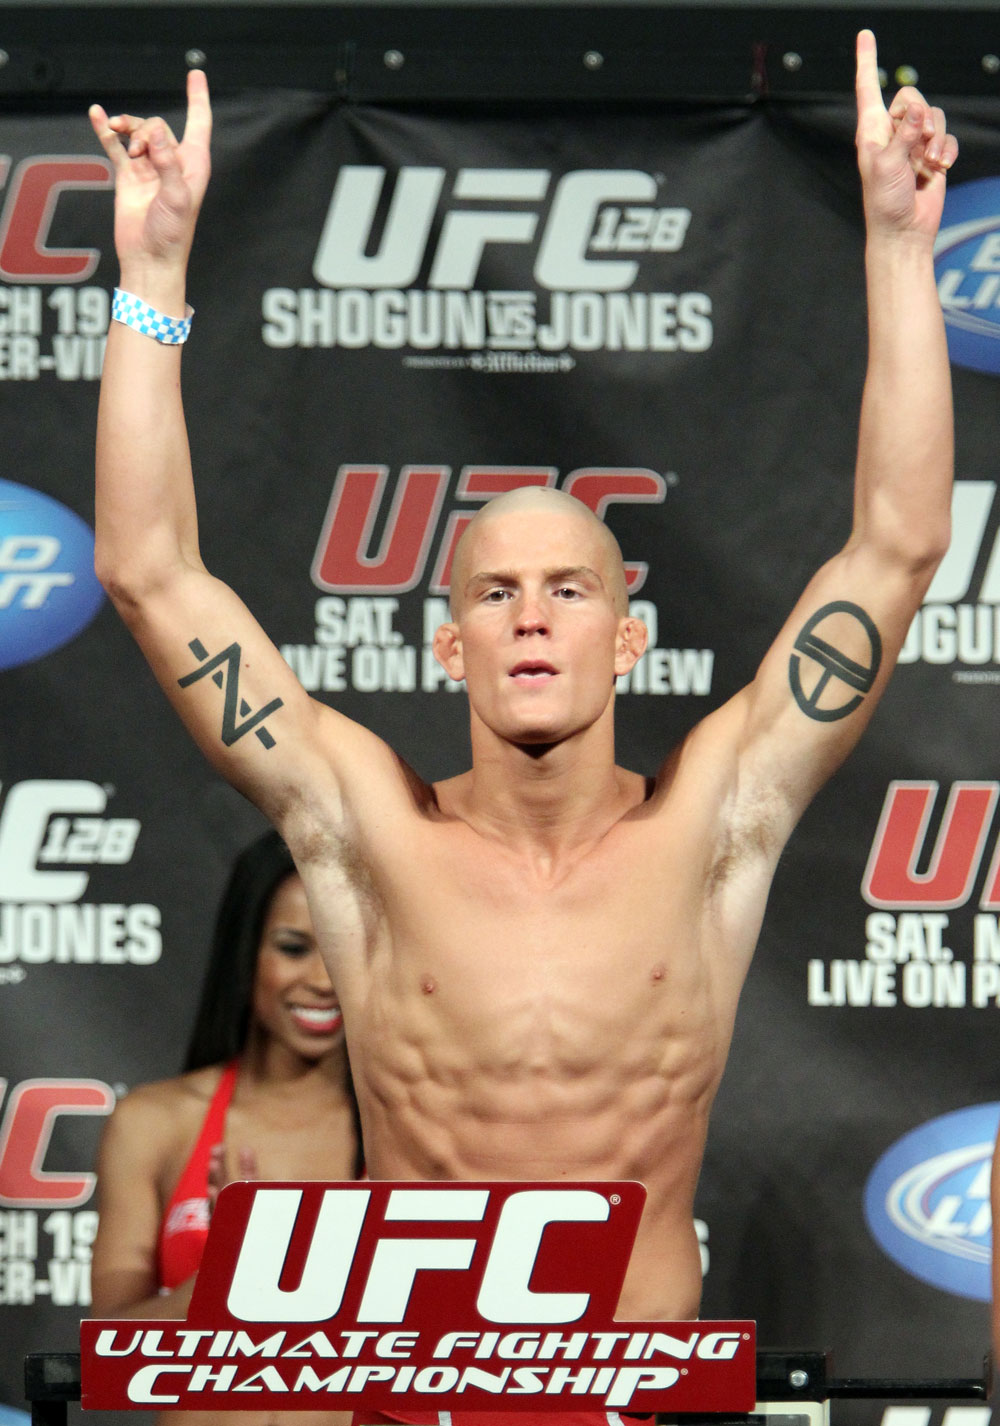 UFC 128 Weigh-ins: Erik Koch